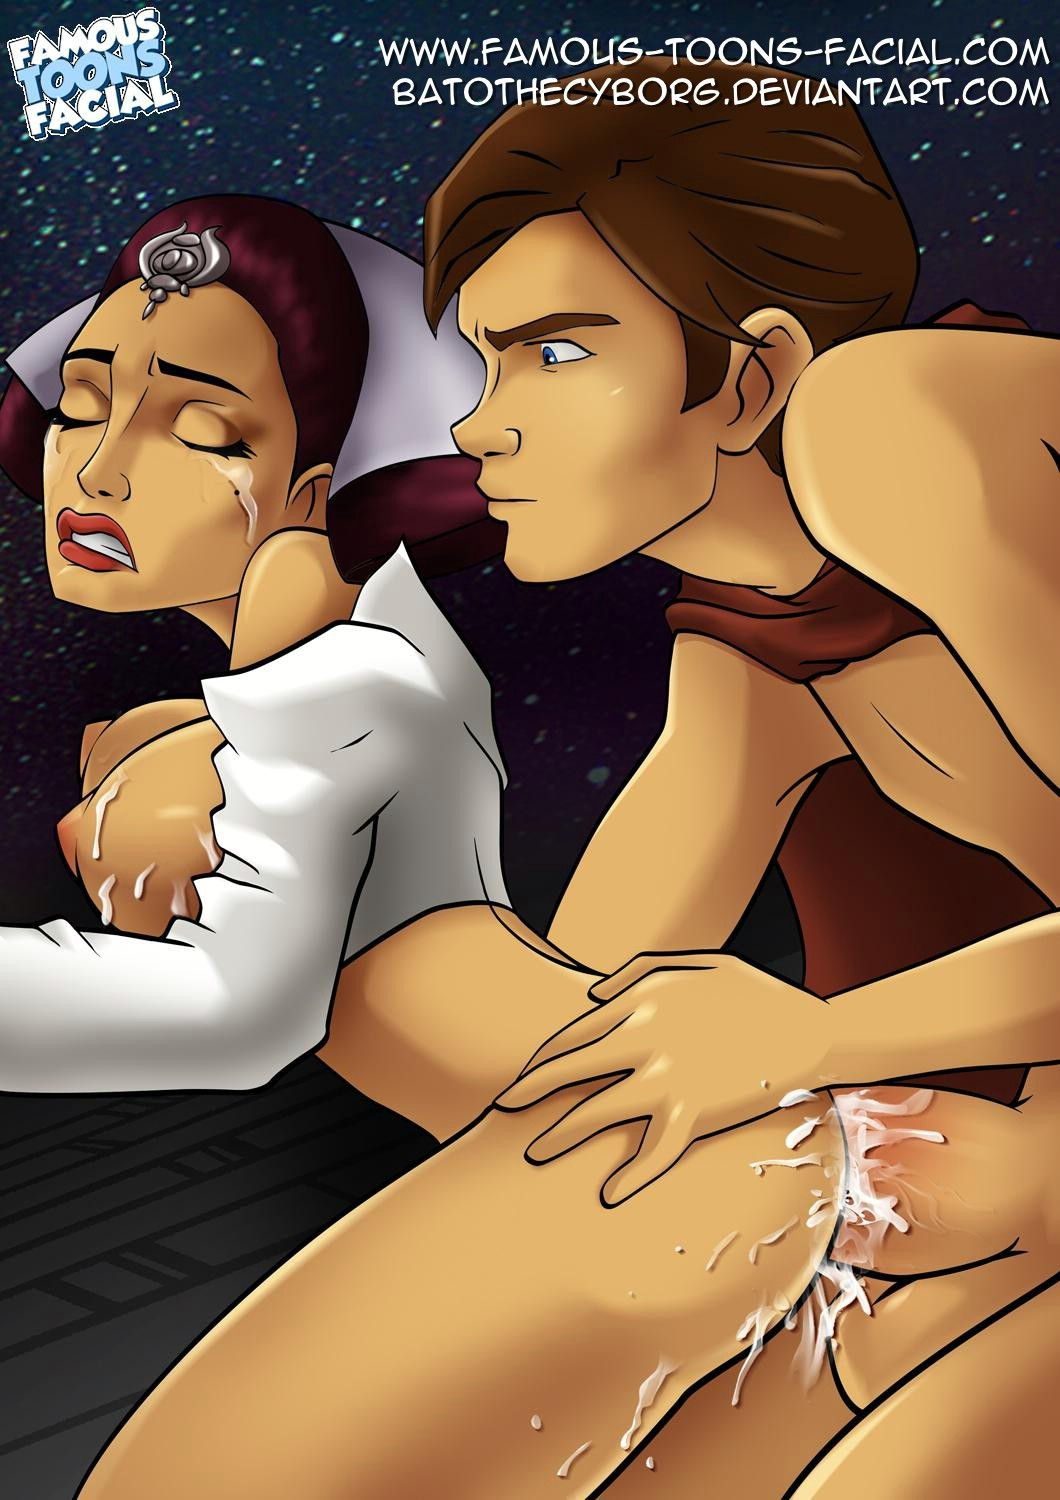 Cartoon star wars grils nude sex image